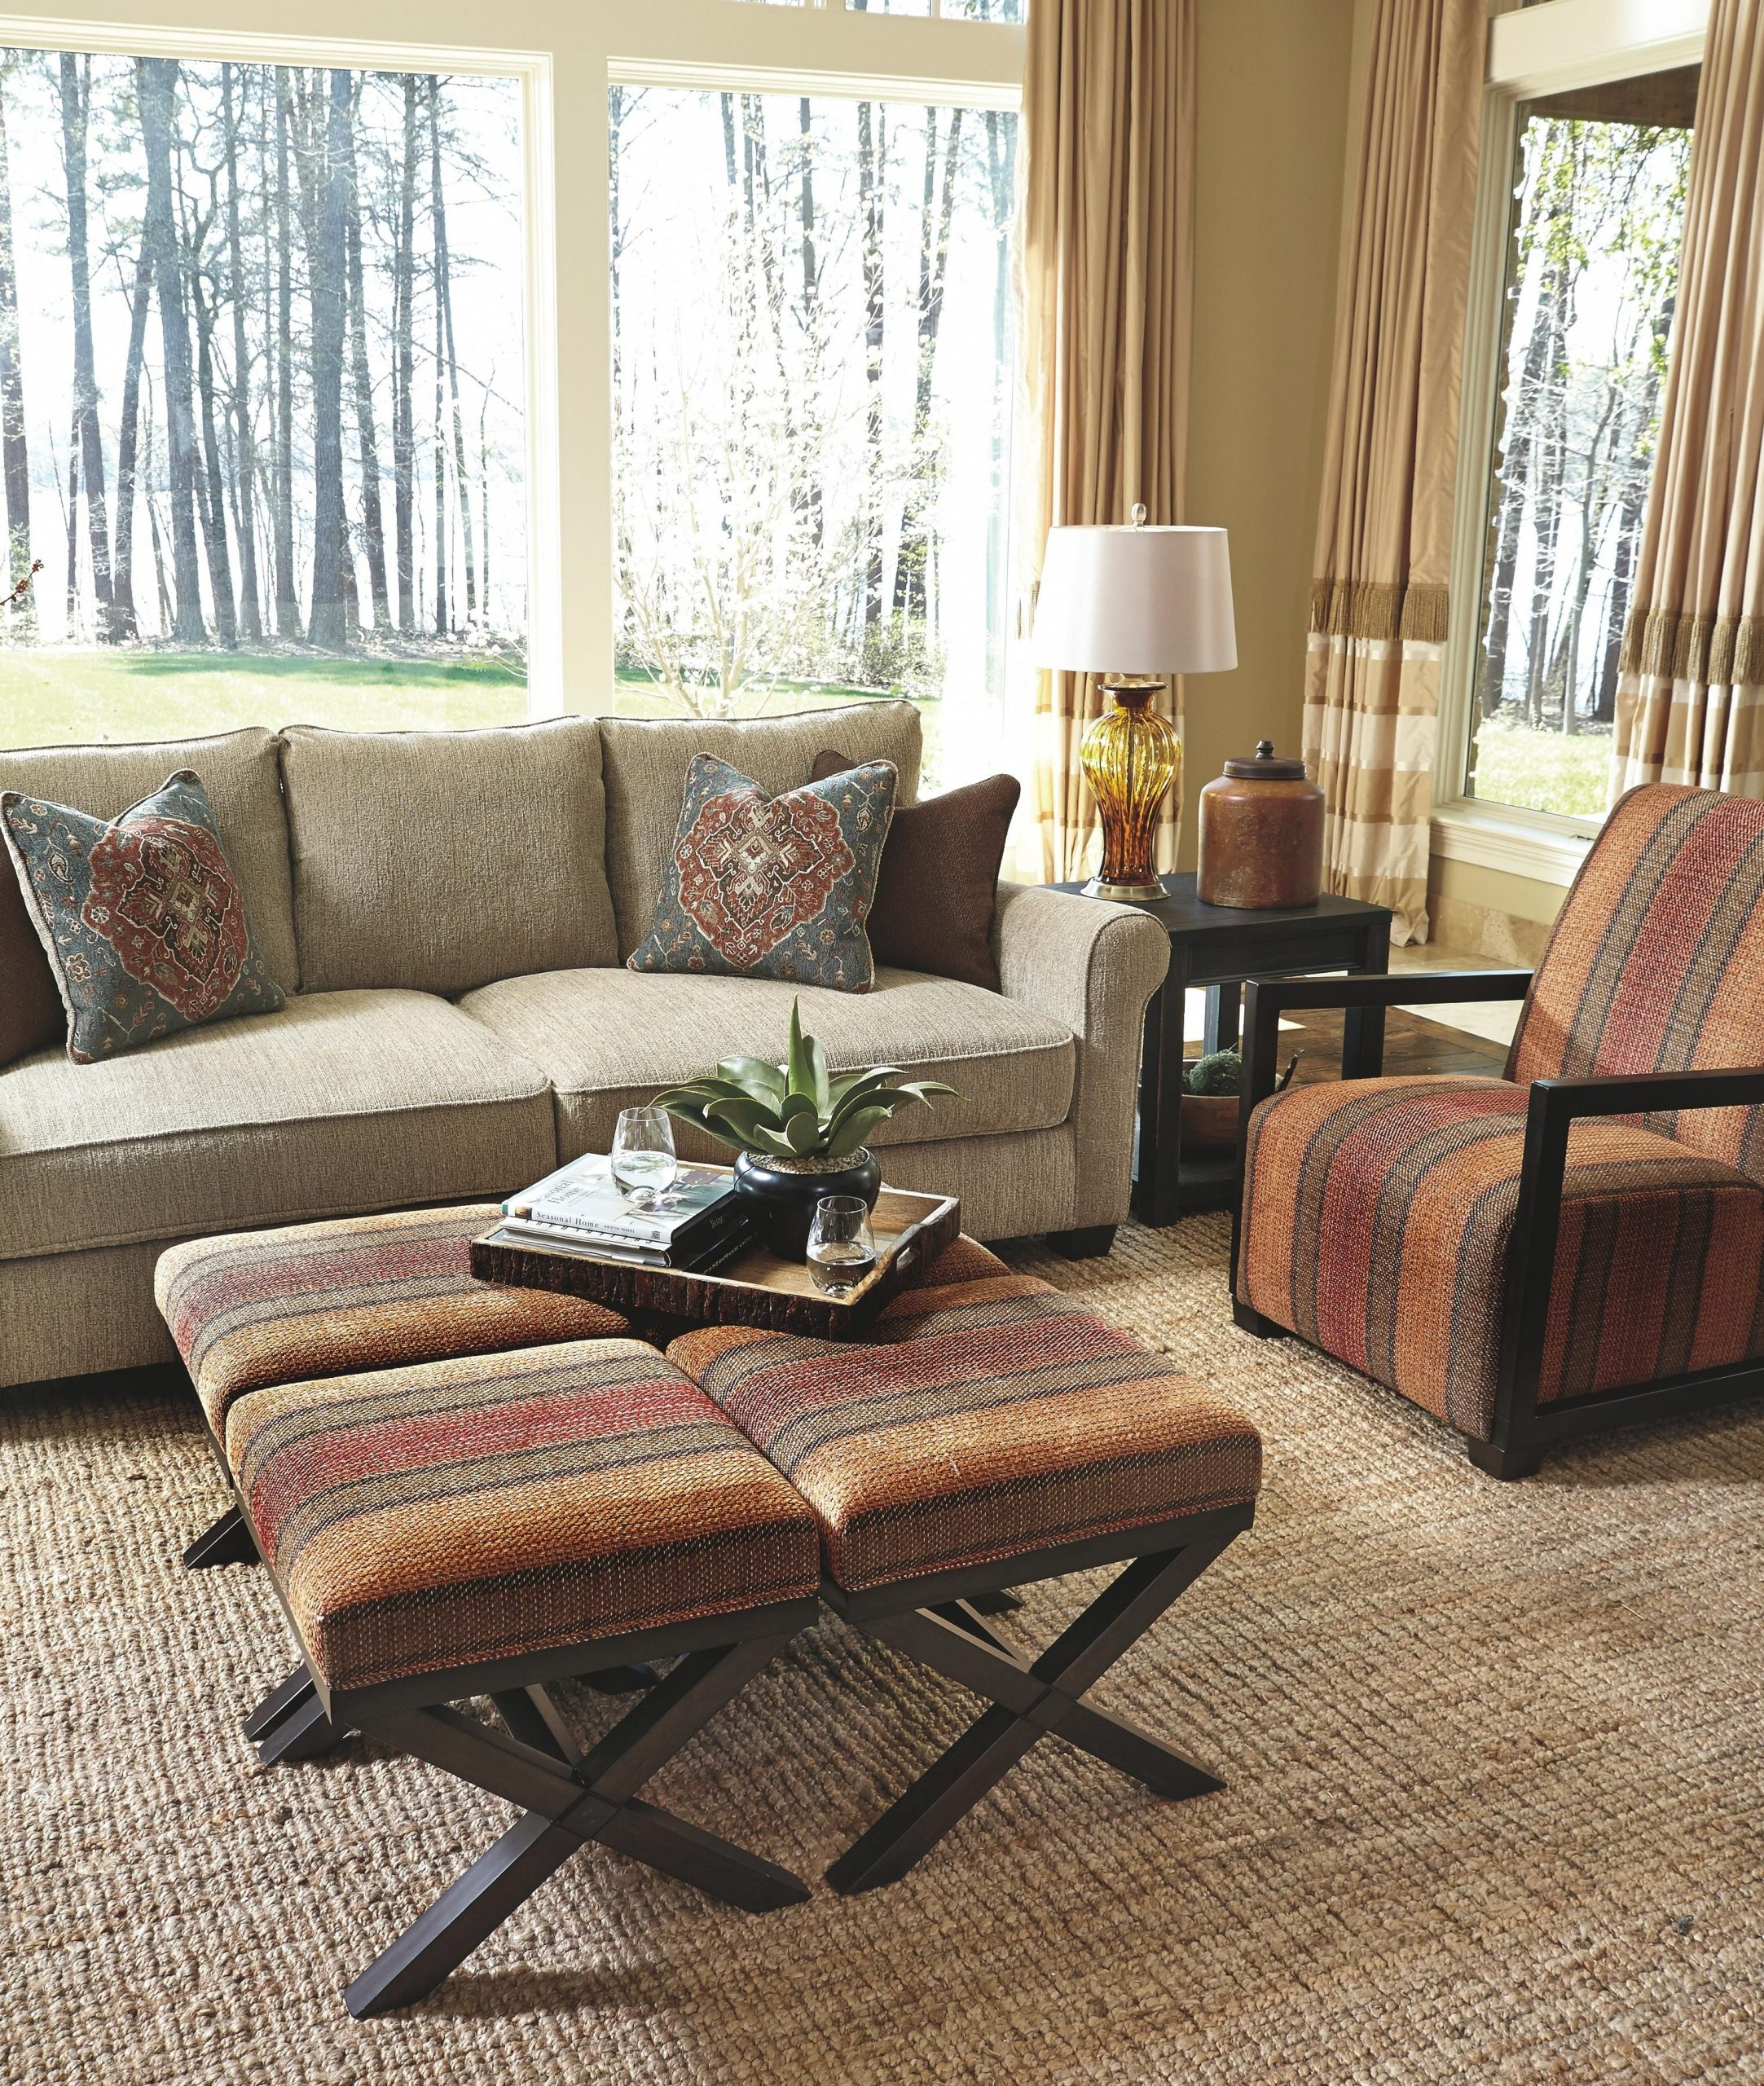 Seating For Small Living Room #Wroughtironpatiochairs # with regard to Most Comfortable Living Room Chairs